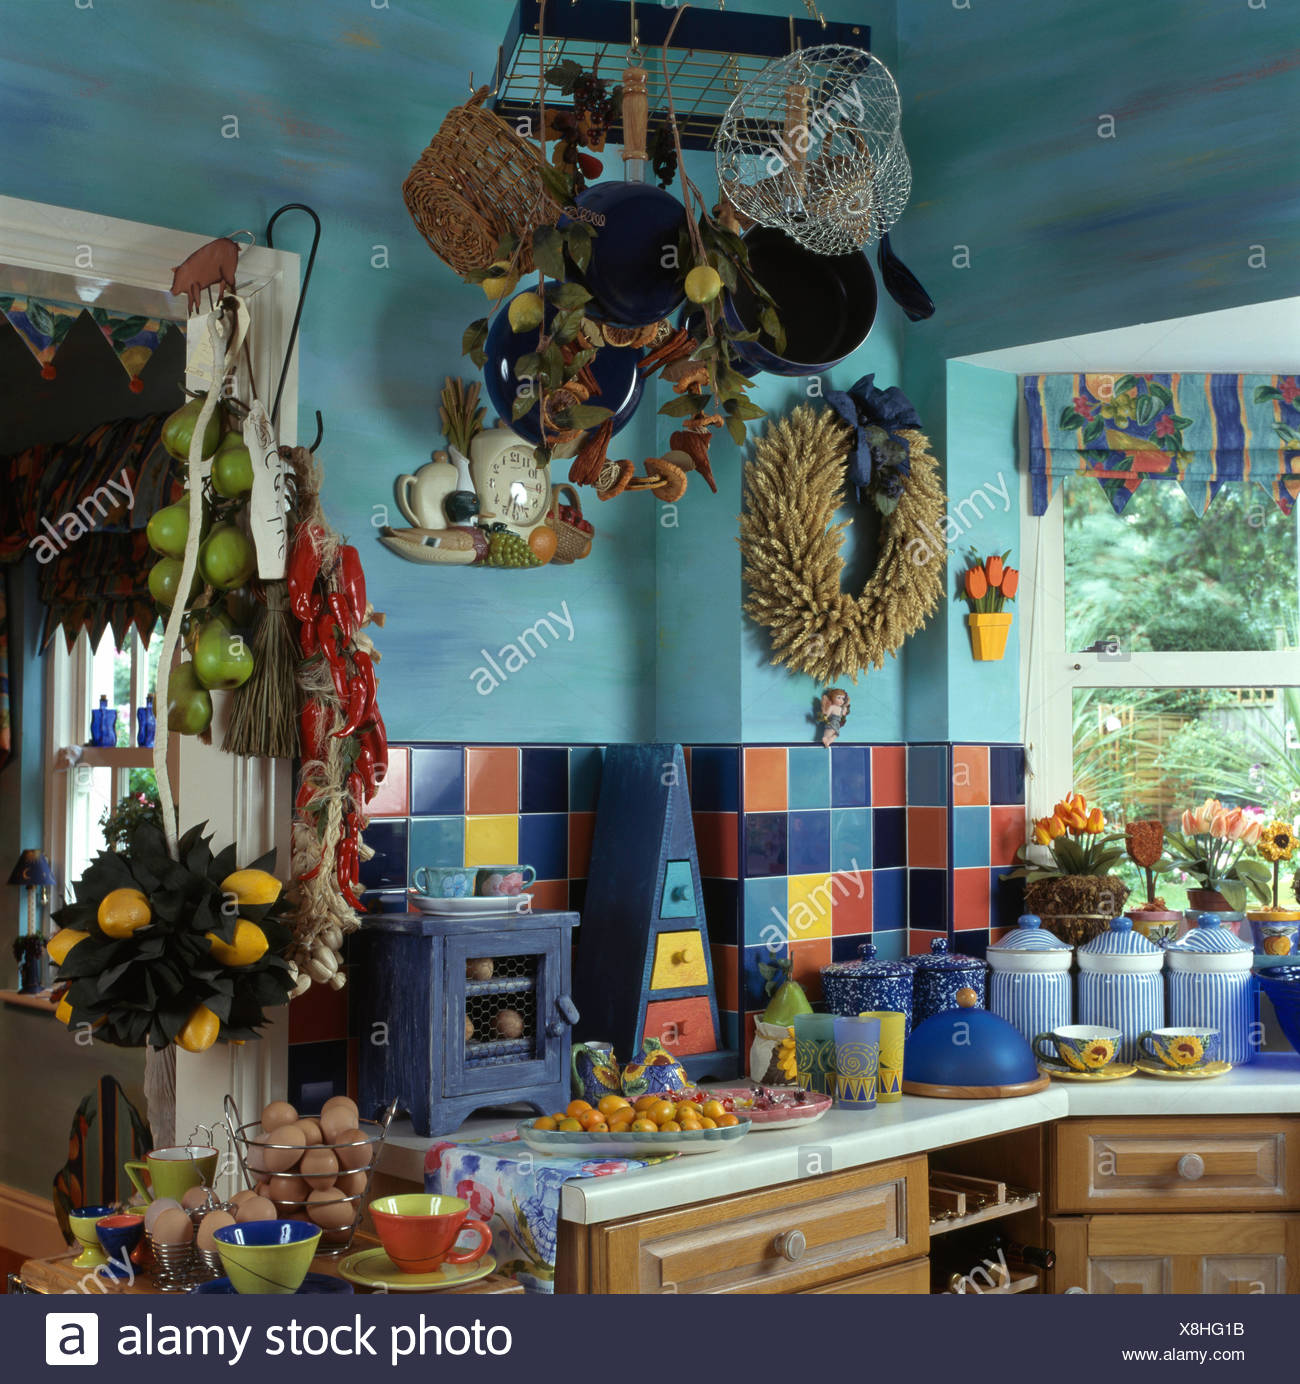 Colorful tiles on splash back in a small blue cluttered nineties ...